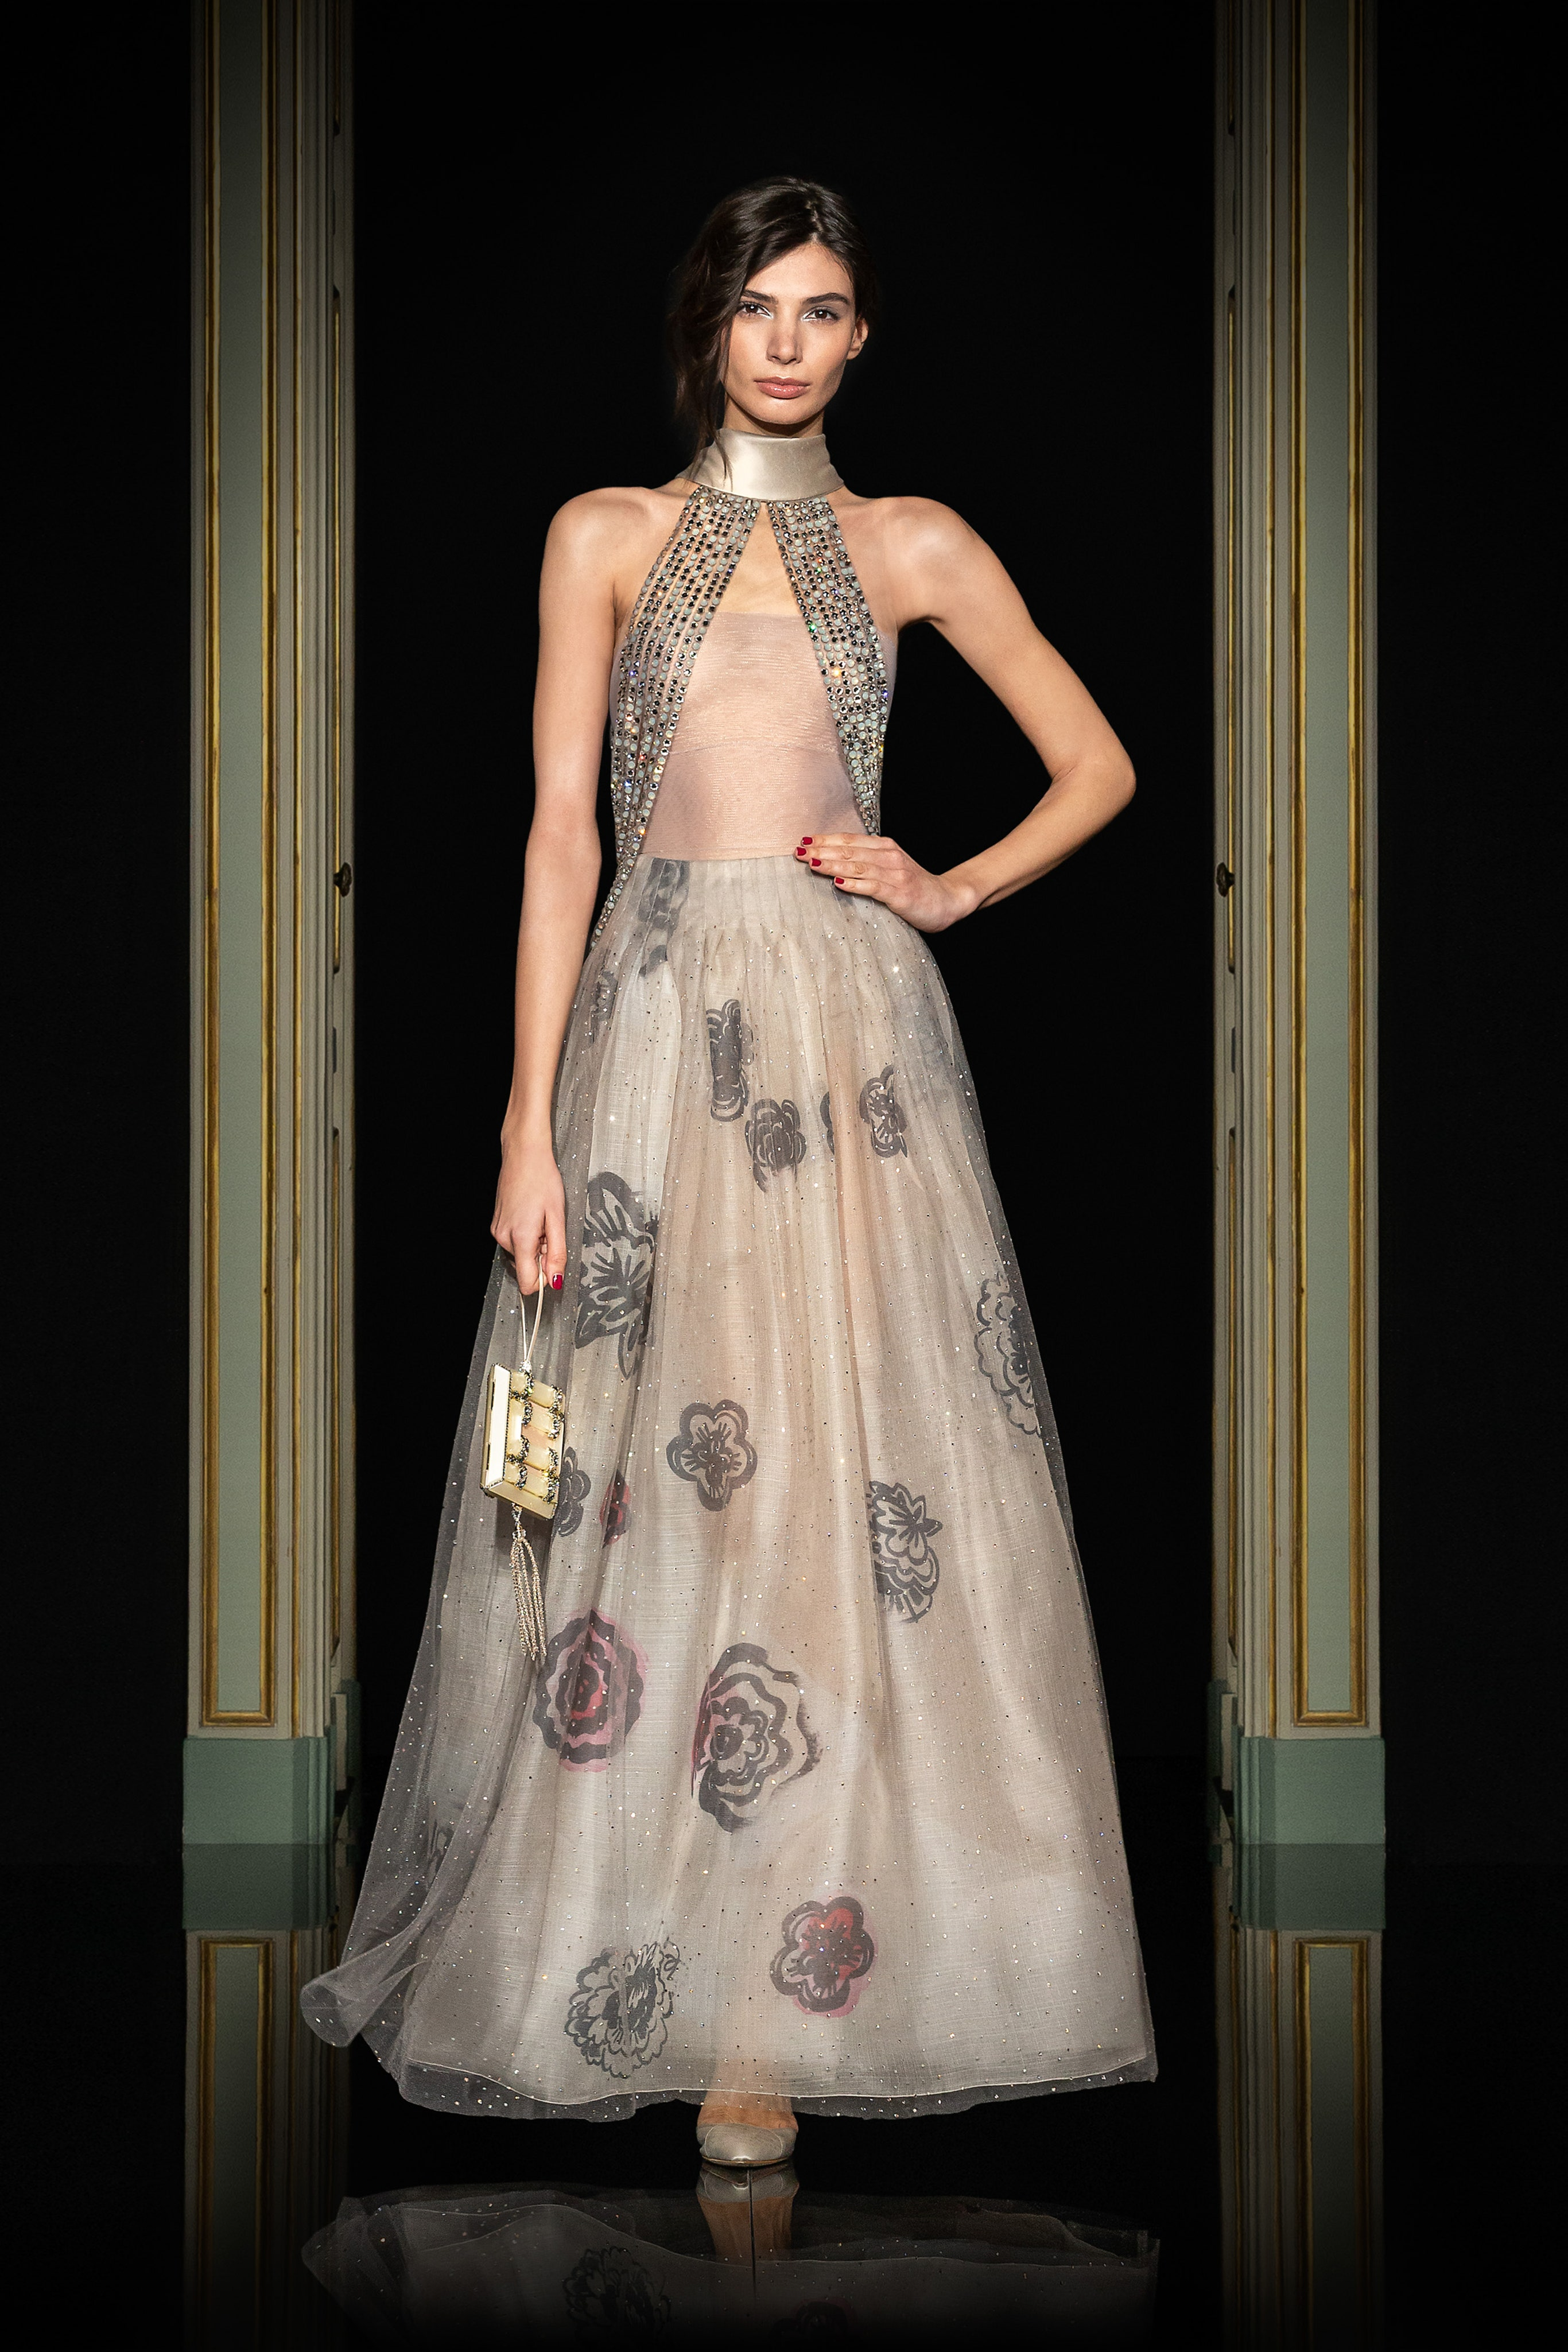 Armani Privé Spring 2021 Couture. A lady wearing a a gray gown with silver beading on the bodice and silver floral work on the skirt.